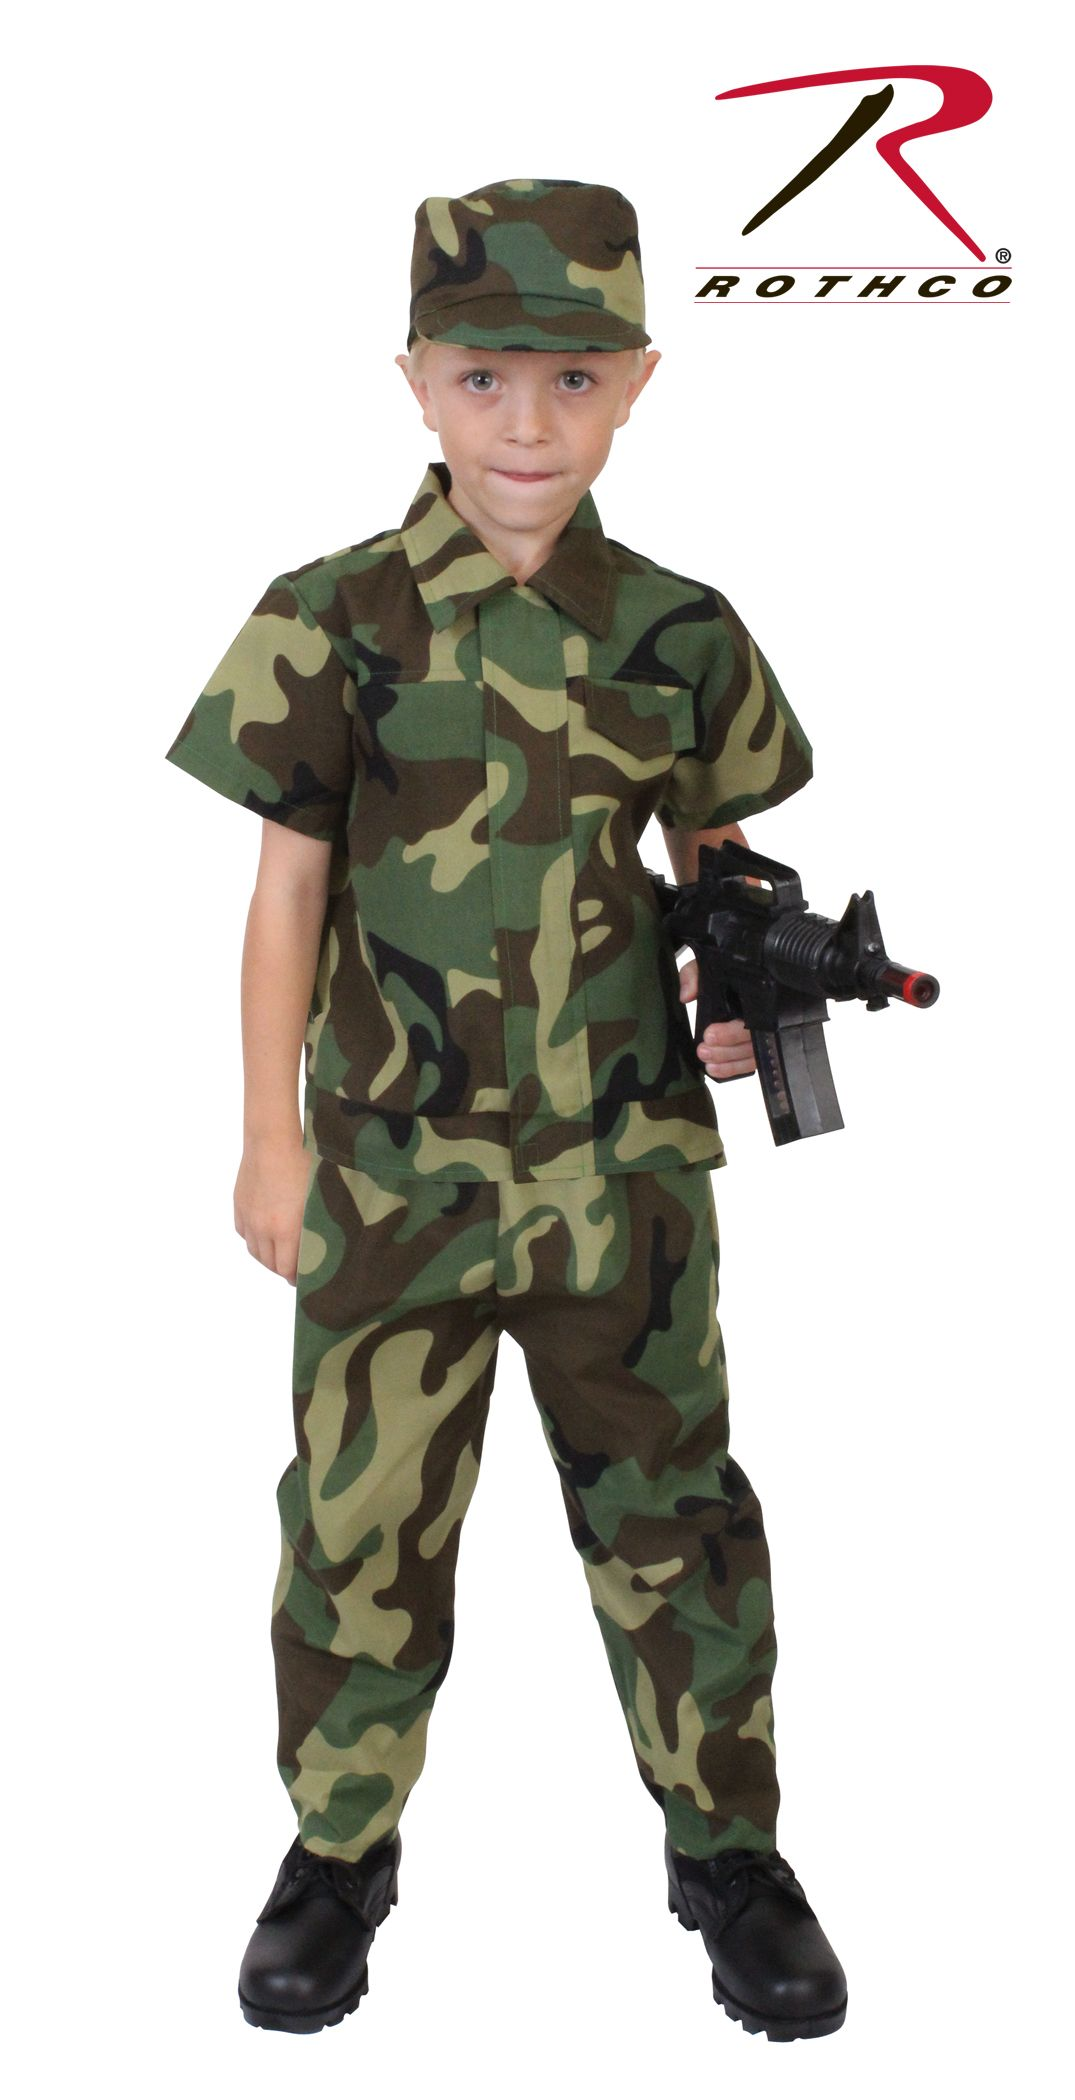 rothco kids camouflage soldier costume halloween - Soldier Girl Halloween Costume